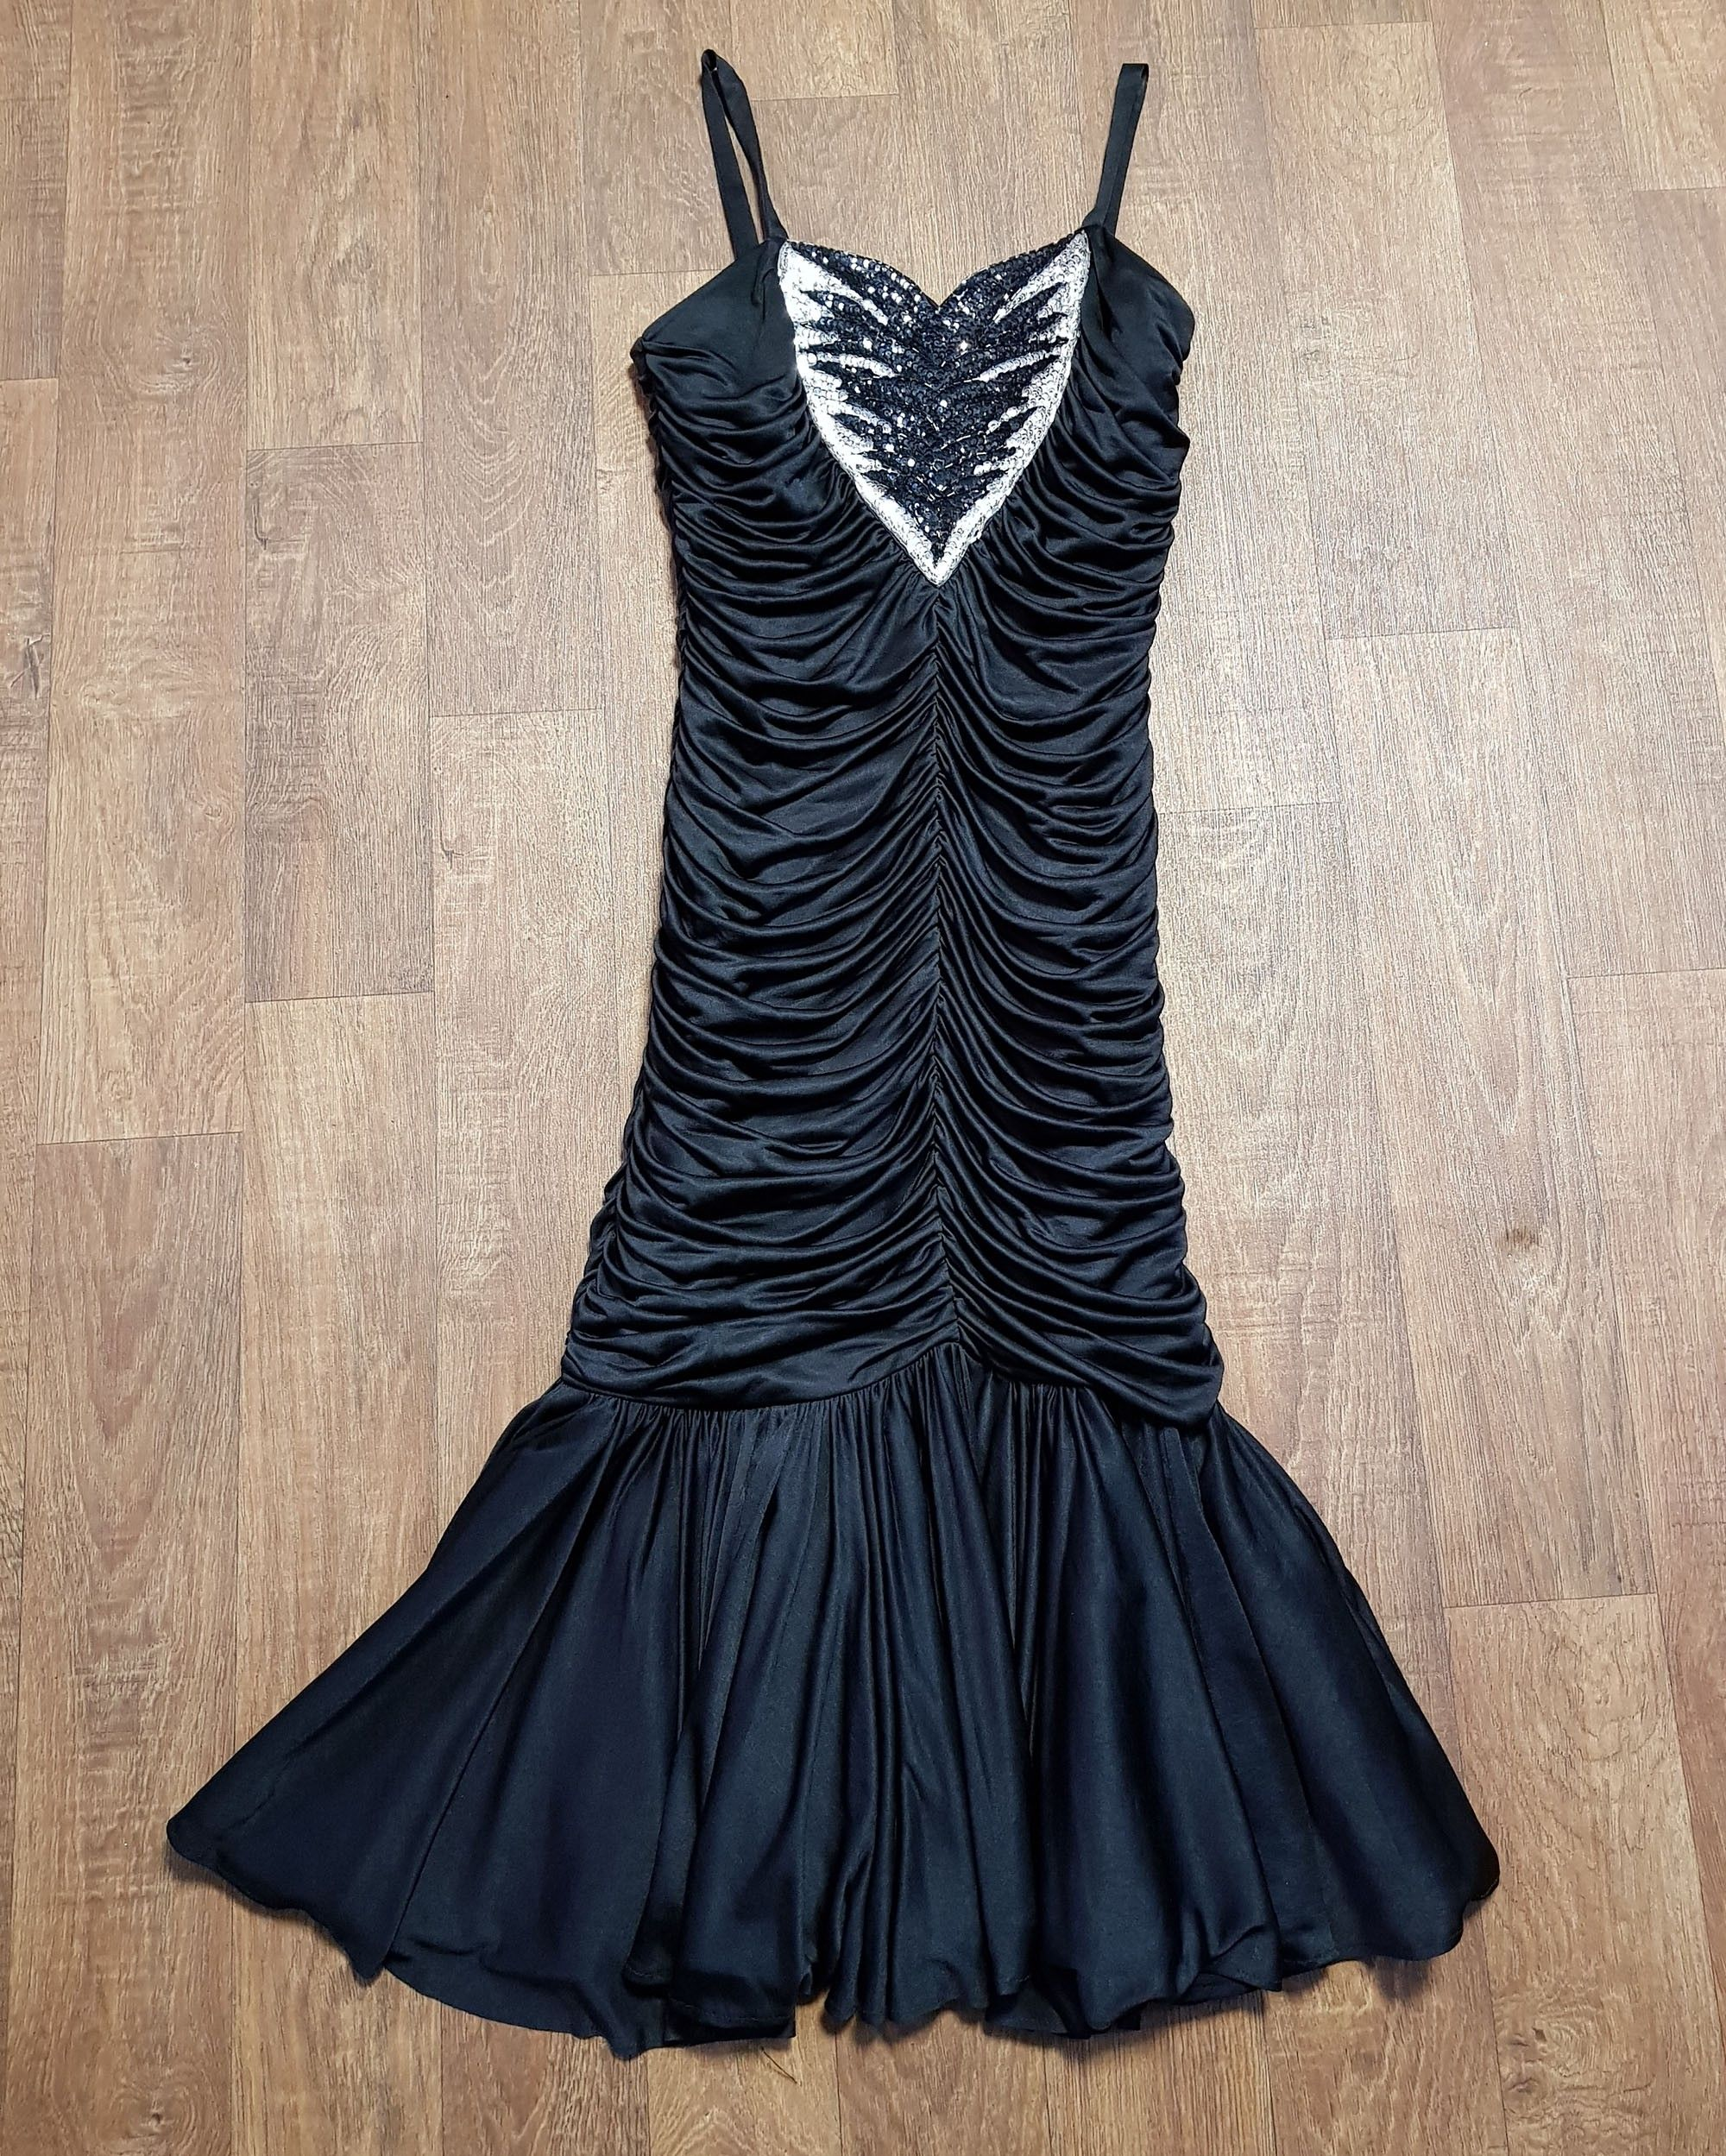 1980s Vintage Black Rouched Sequin Party/Prom Dress UK Size 12